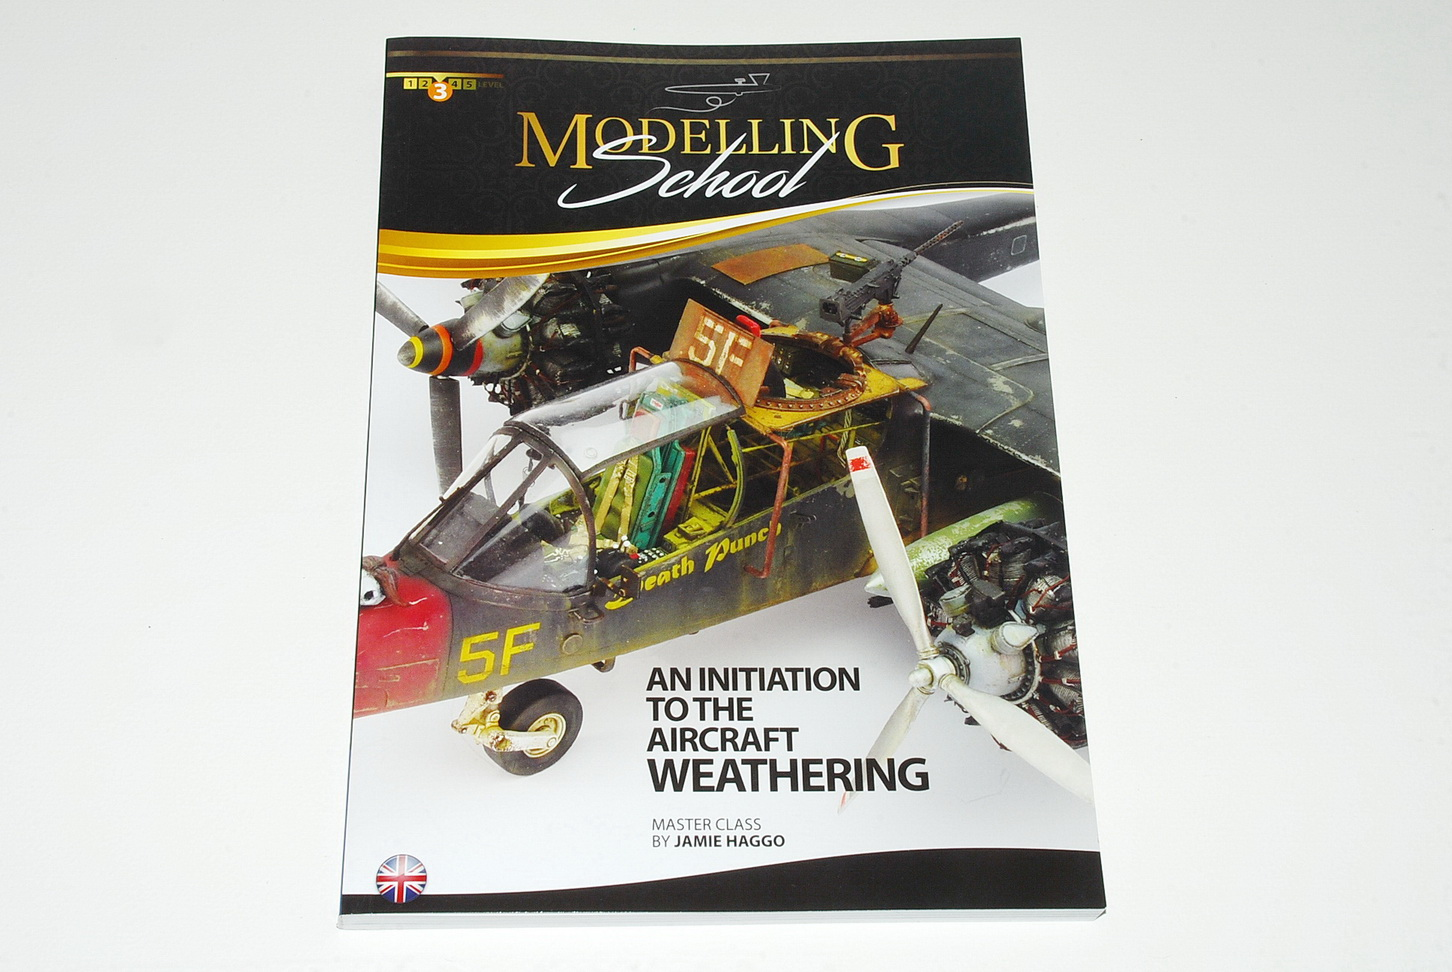 Modelling School – An initiation to the aircraft weathering, by Jamie Haggo (AMMO by Mig Jimenez publications)